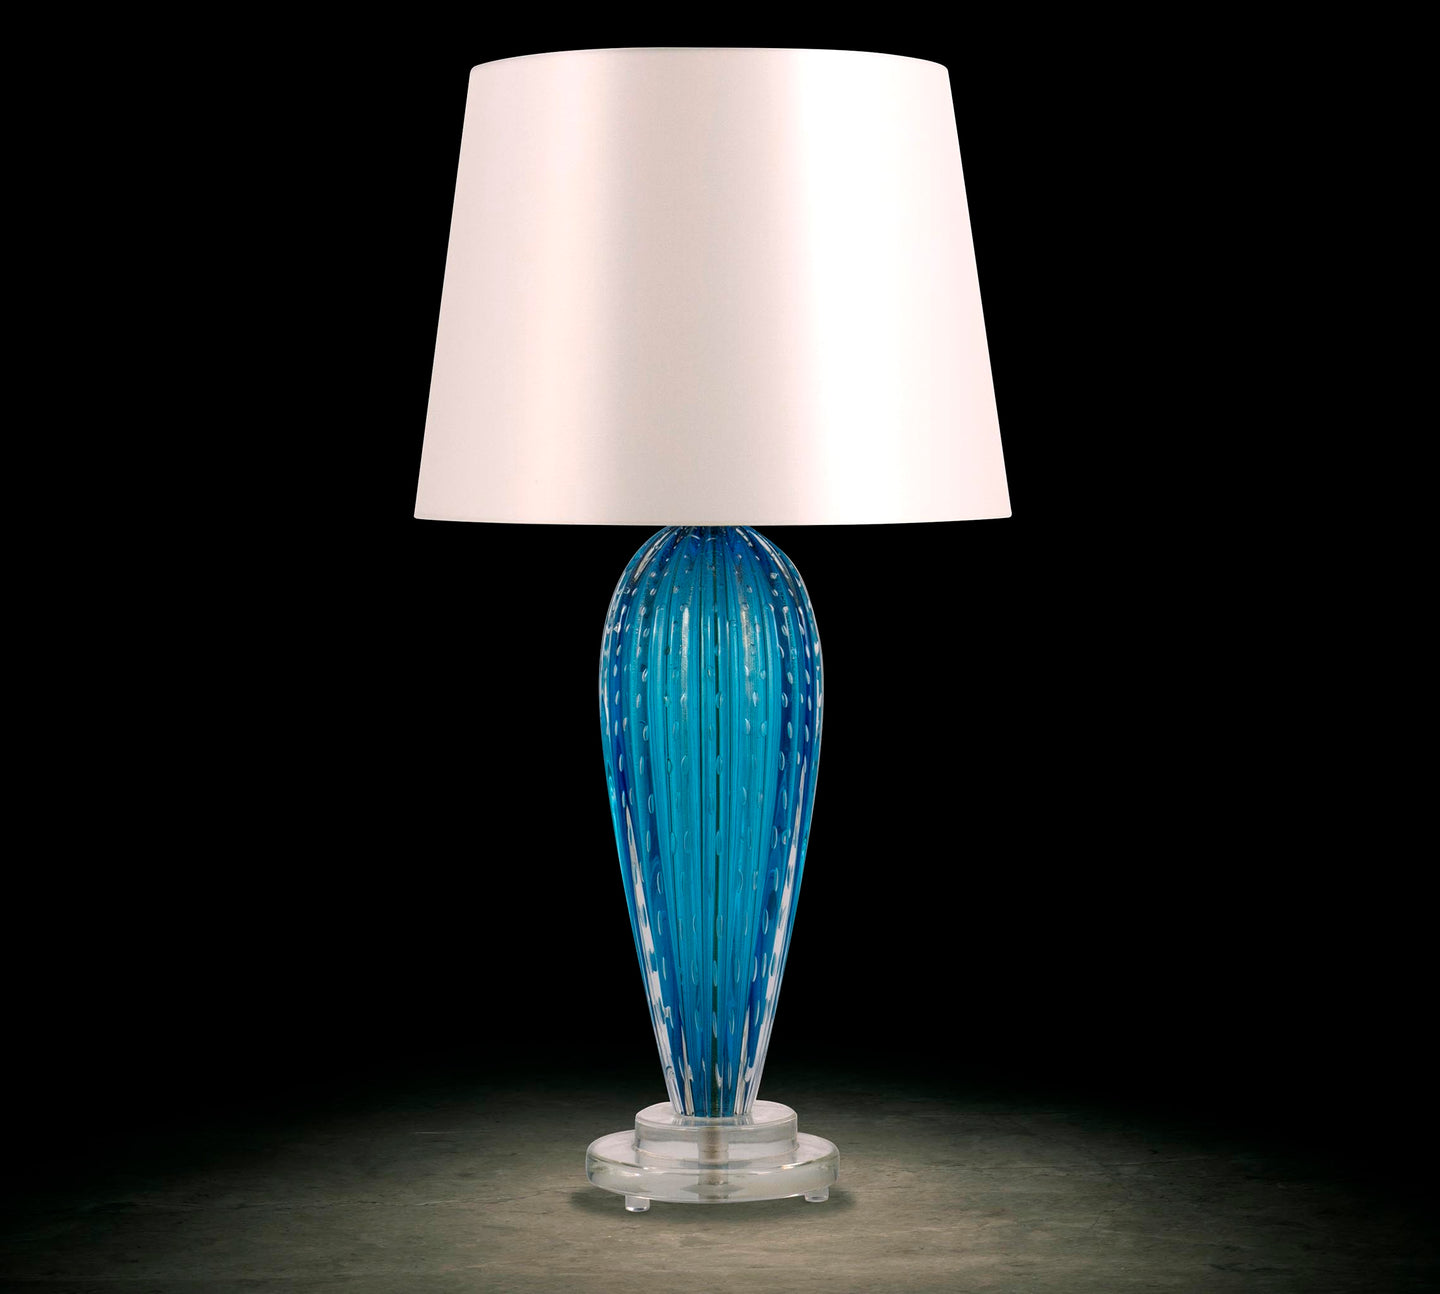 image of the murano glass alta lamp